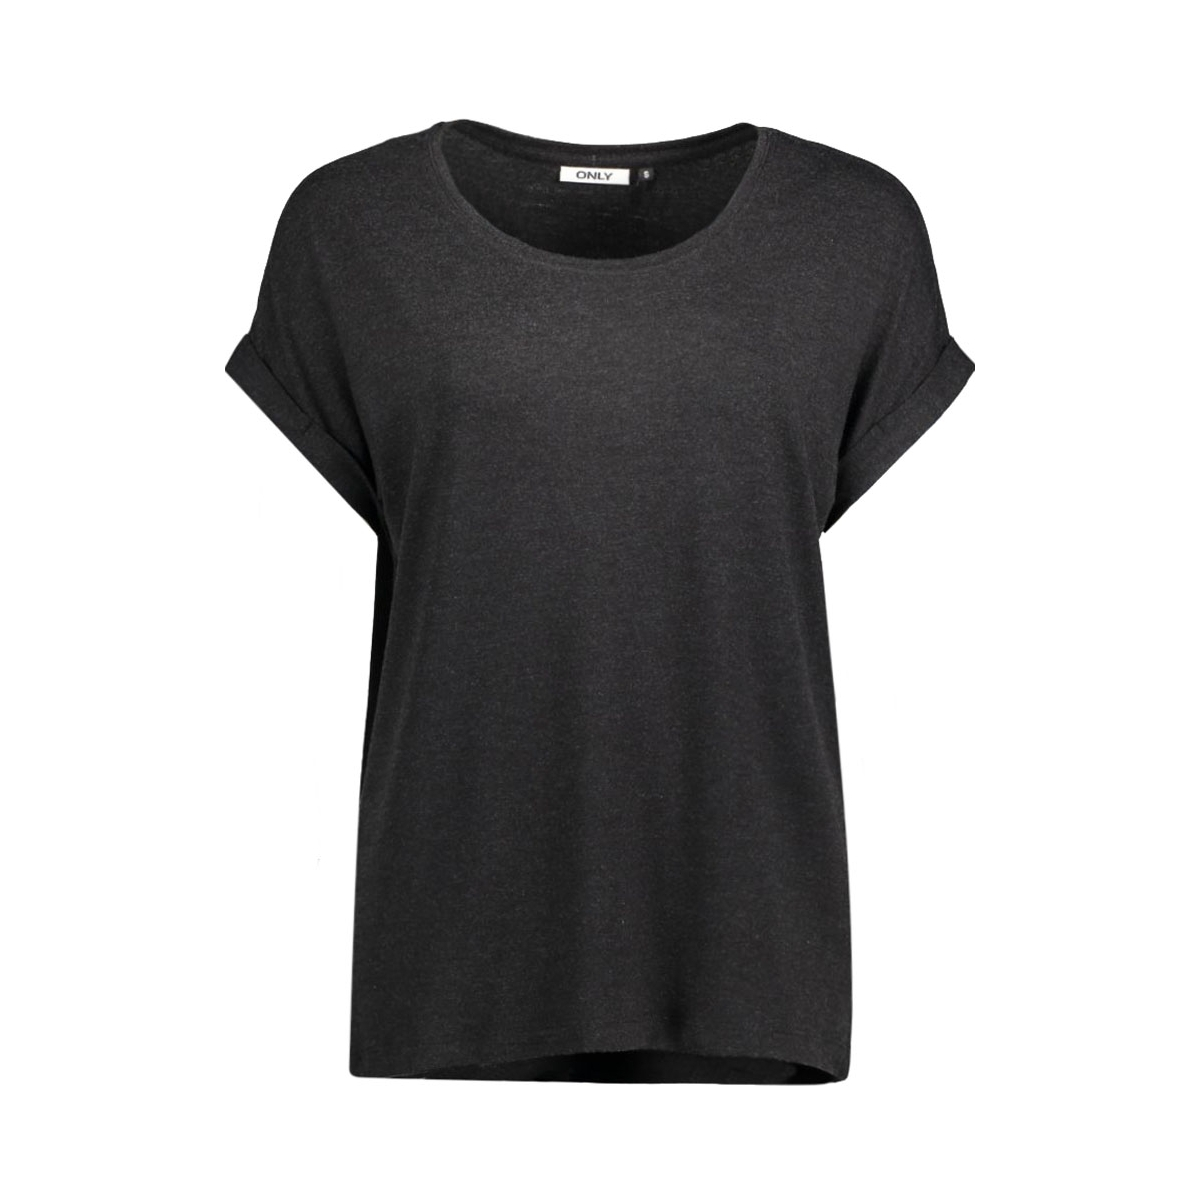 onlmoster s/s o-neck top noos jrs 15106662 only t-shirt black